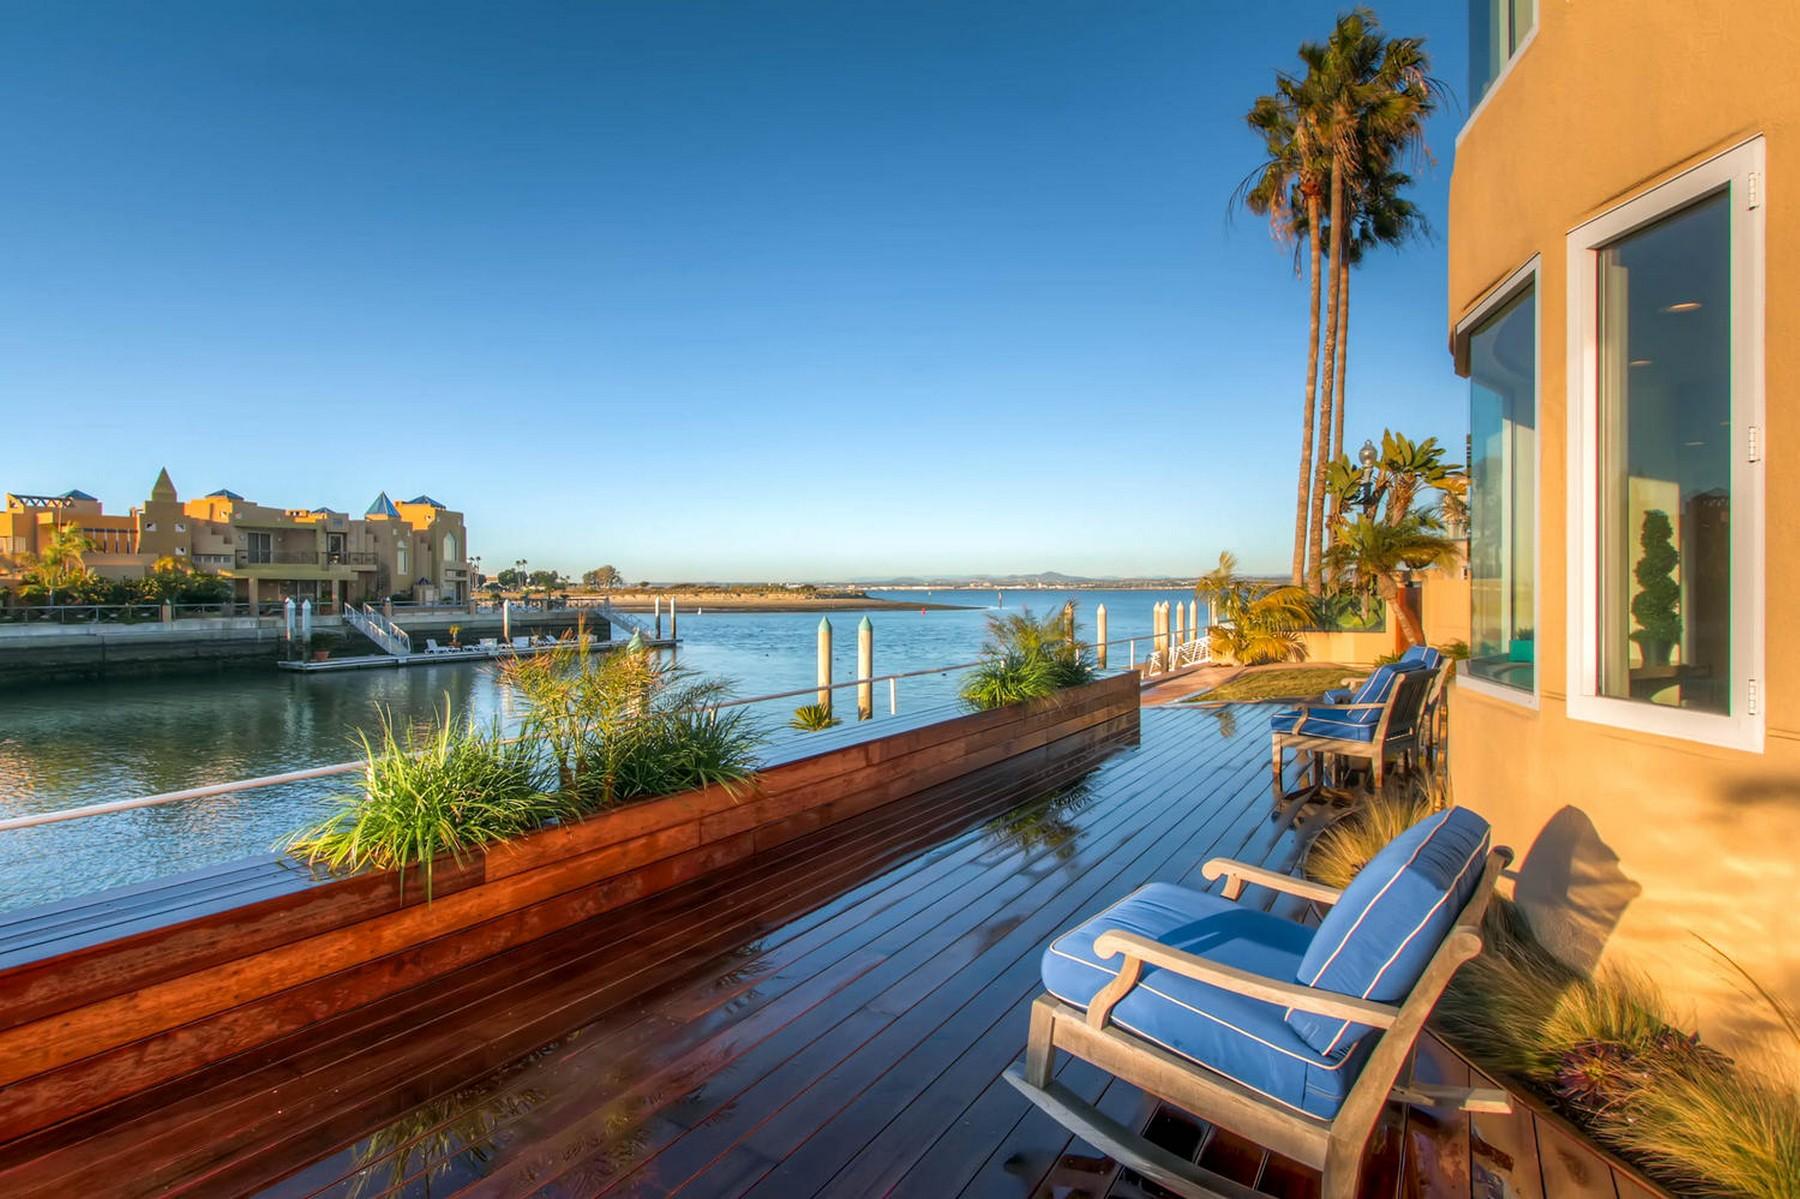 Additional photo for property listing at 4 Spinnaker Way  Coronado, California 92118 United States